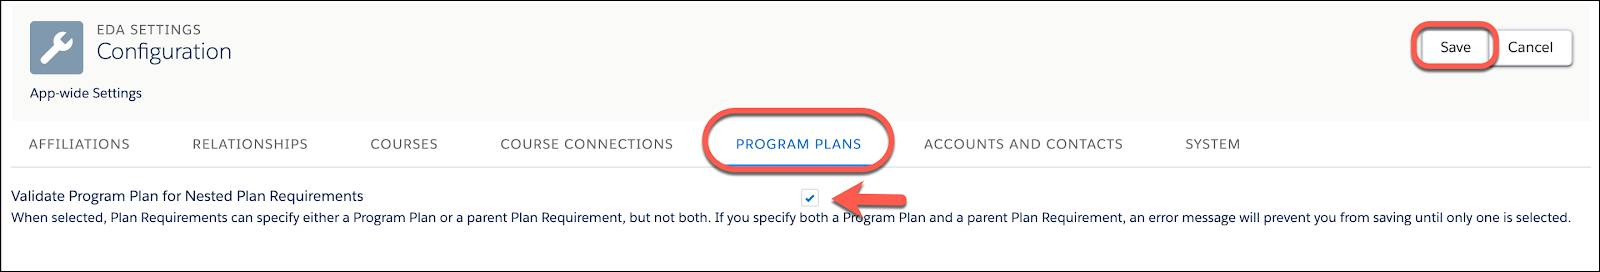 The checkbox to Validate Program Plan for Nested Plan Requirements.